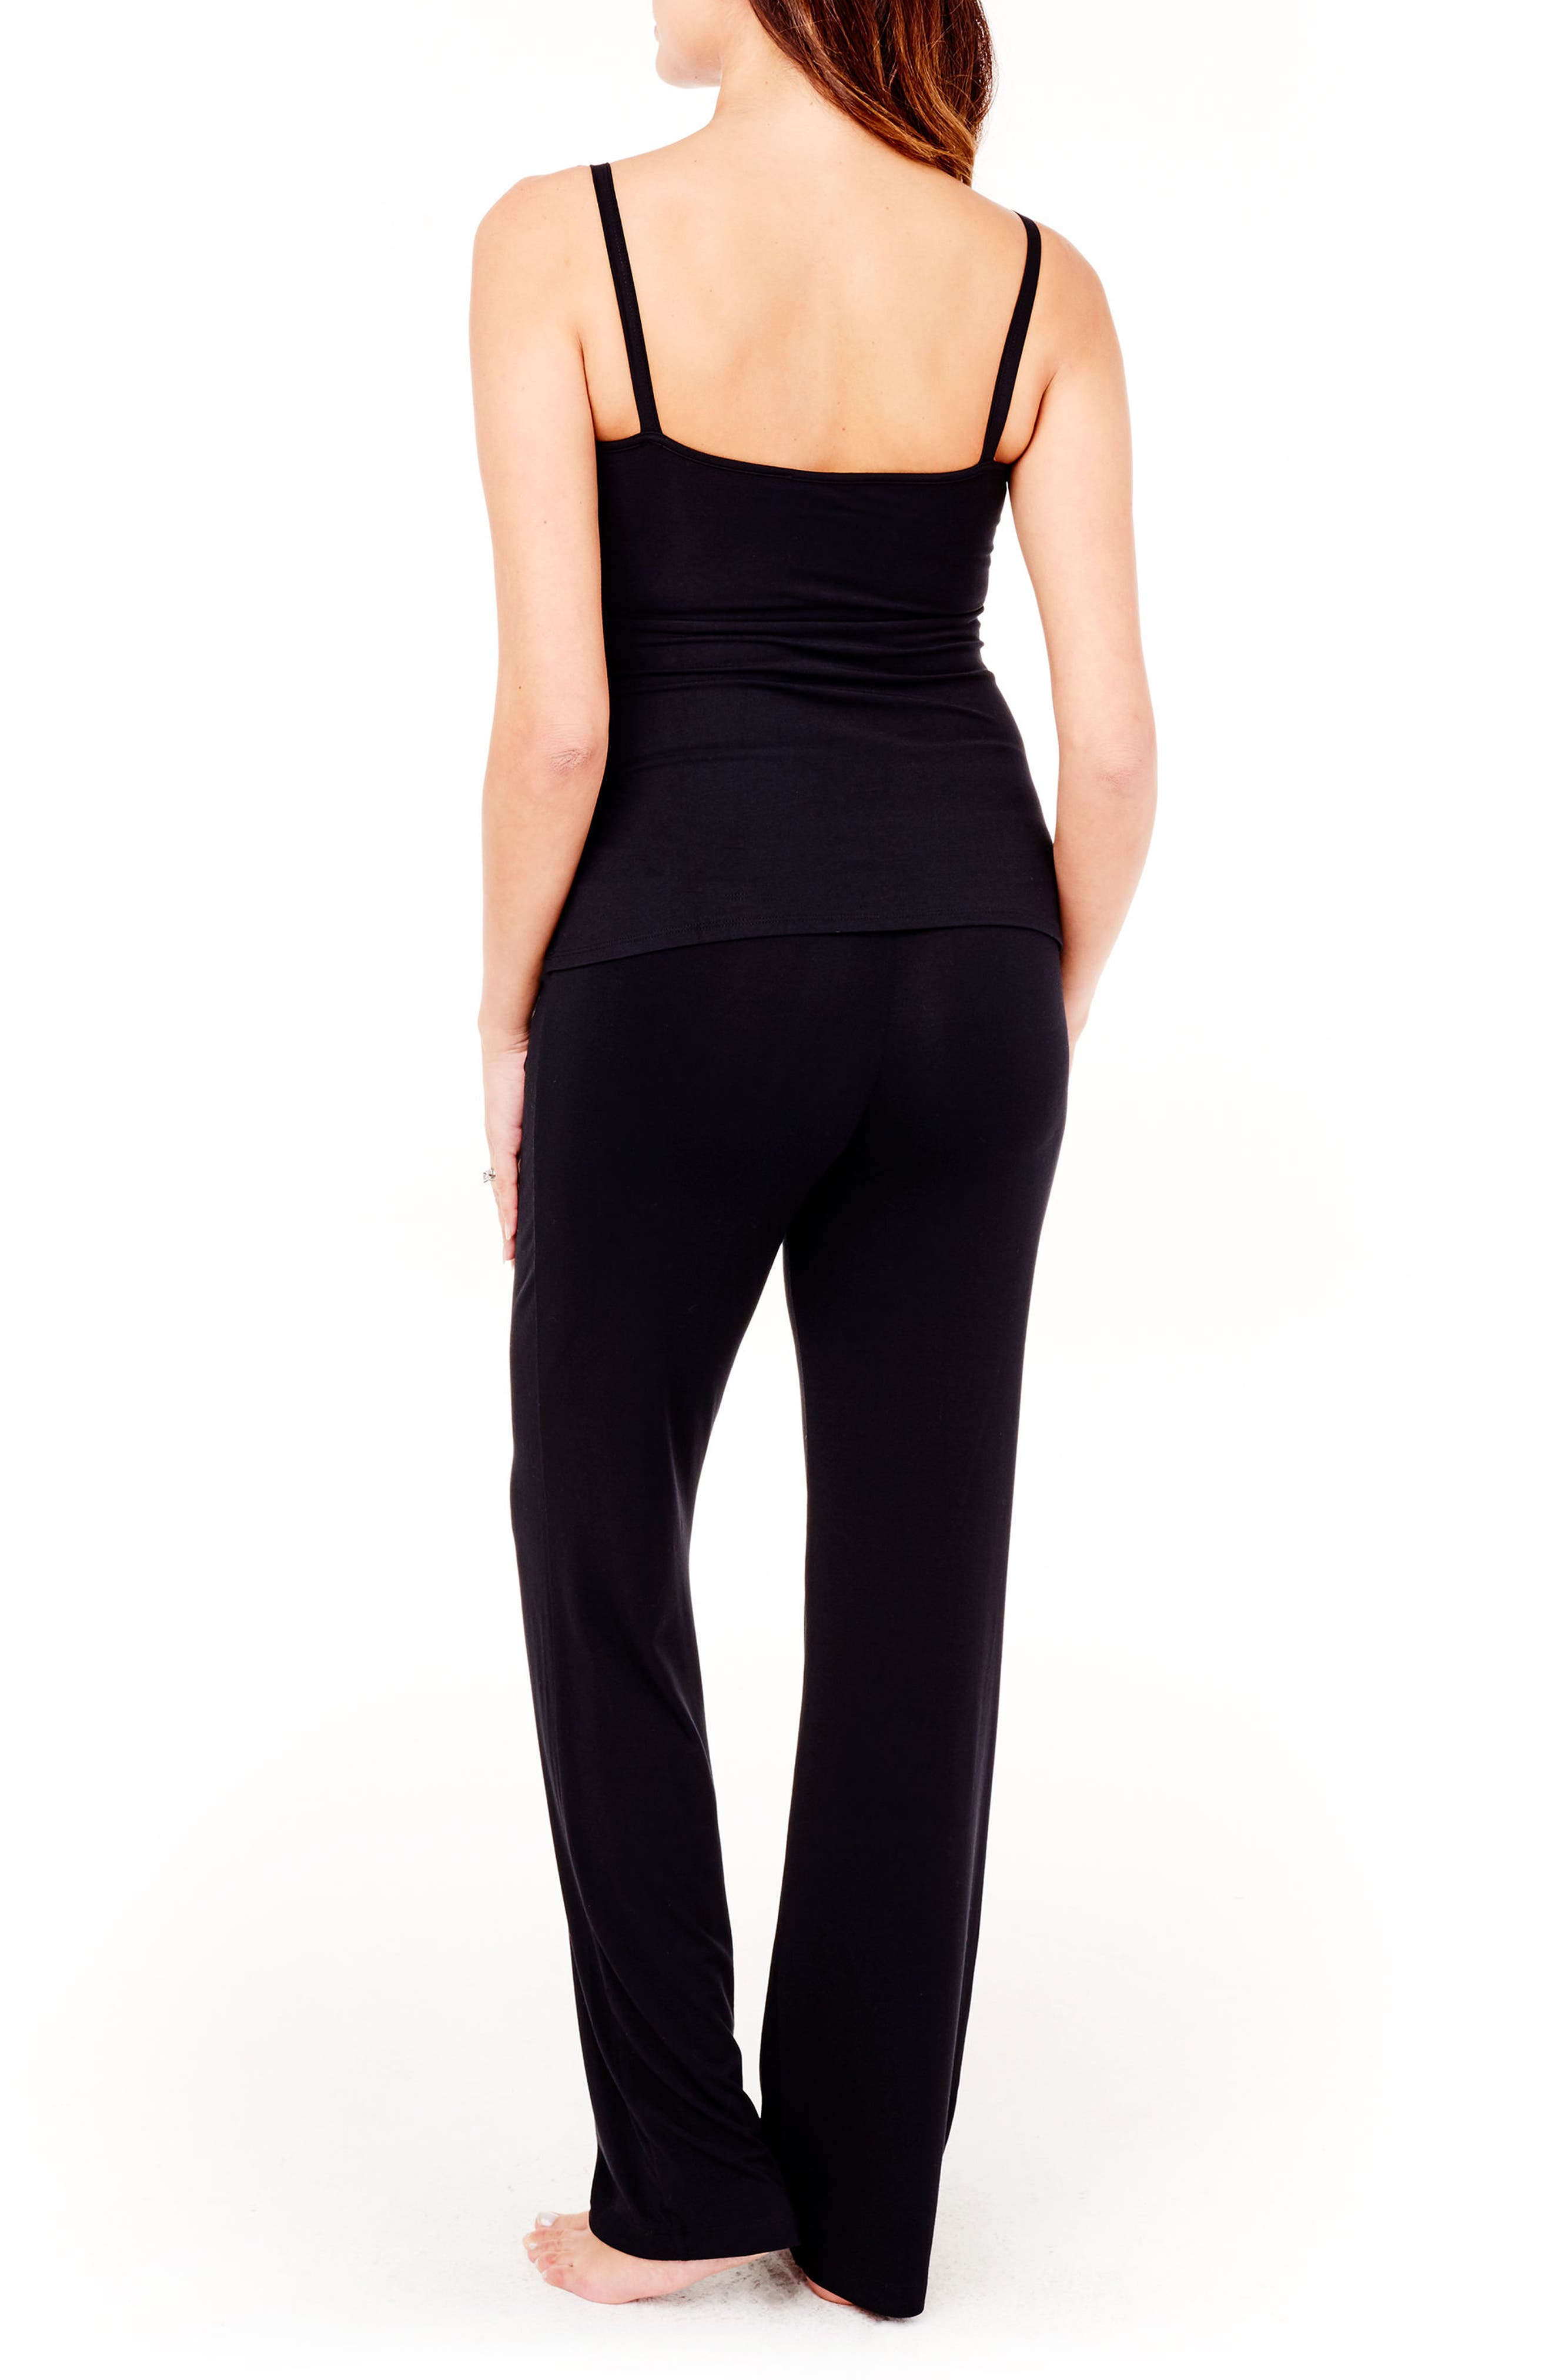 Maternity Lounge Pants,                             Alternate thumbnail 2, color,                             Jet Black